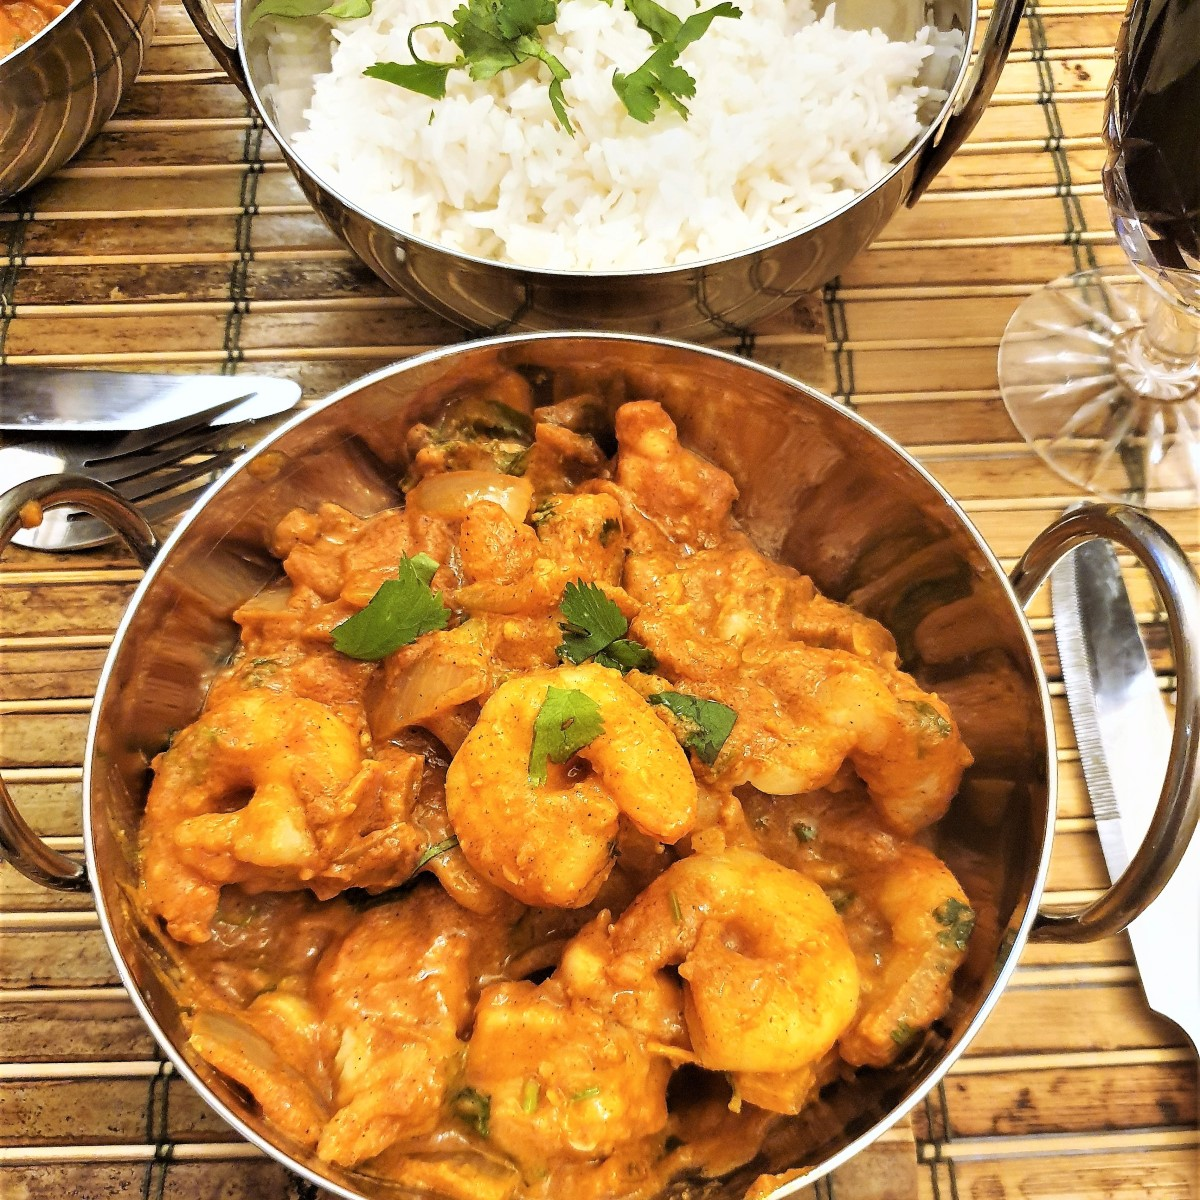 Kashmiri chicken and prawn curry in a dish in front of a bowl of white rice.